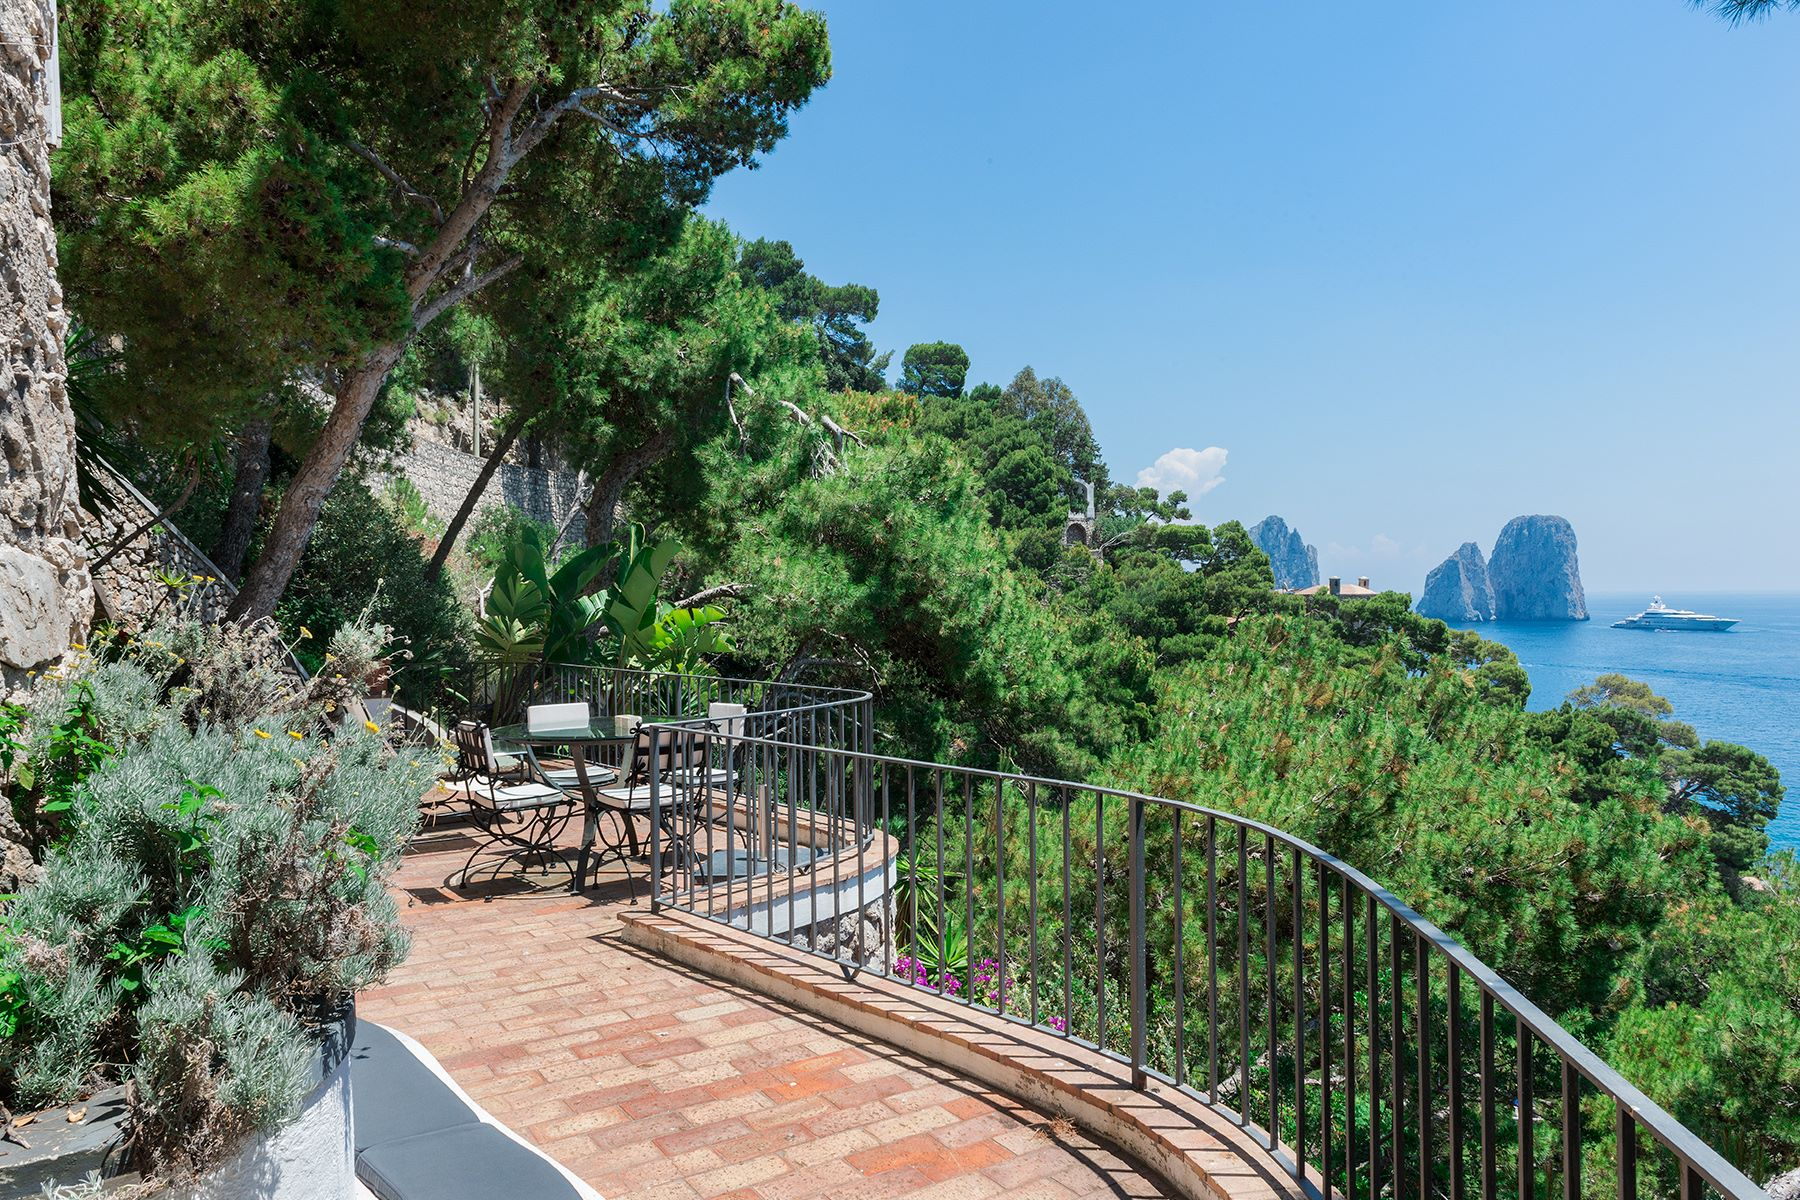 Single Family Home for Sale at Villa Pieds dans l'eau in Capri Capri, Italy